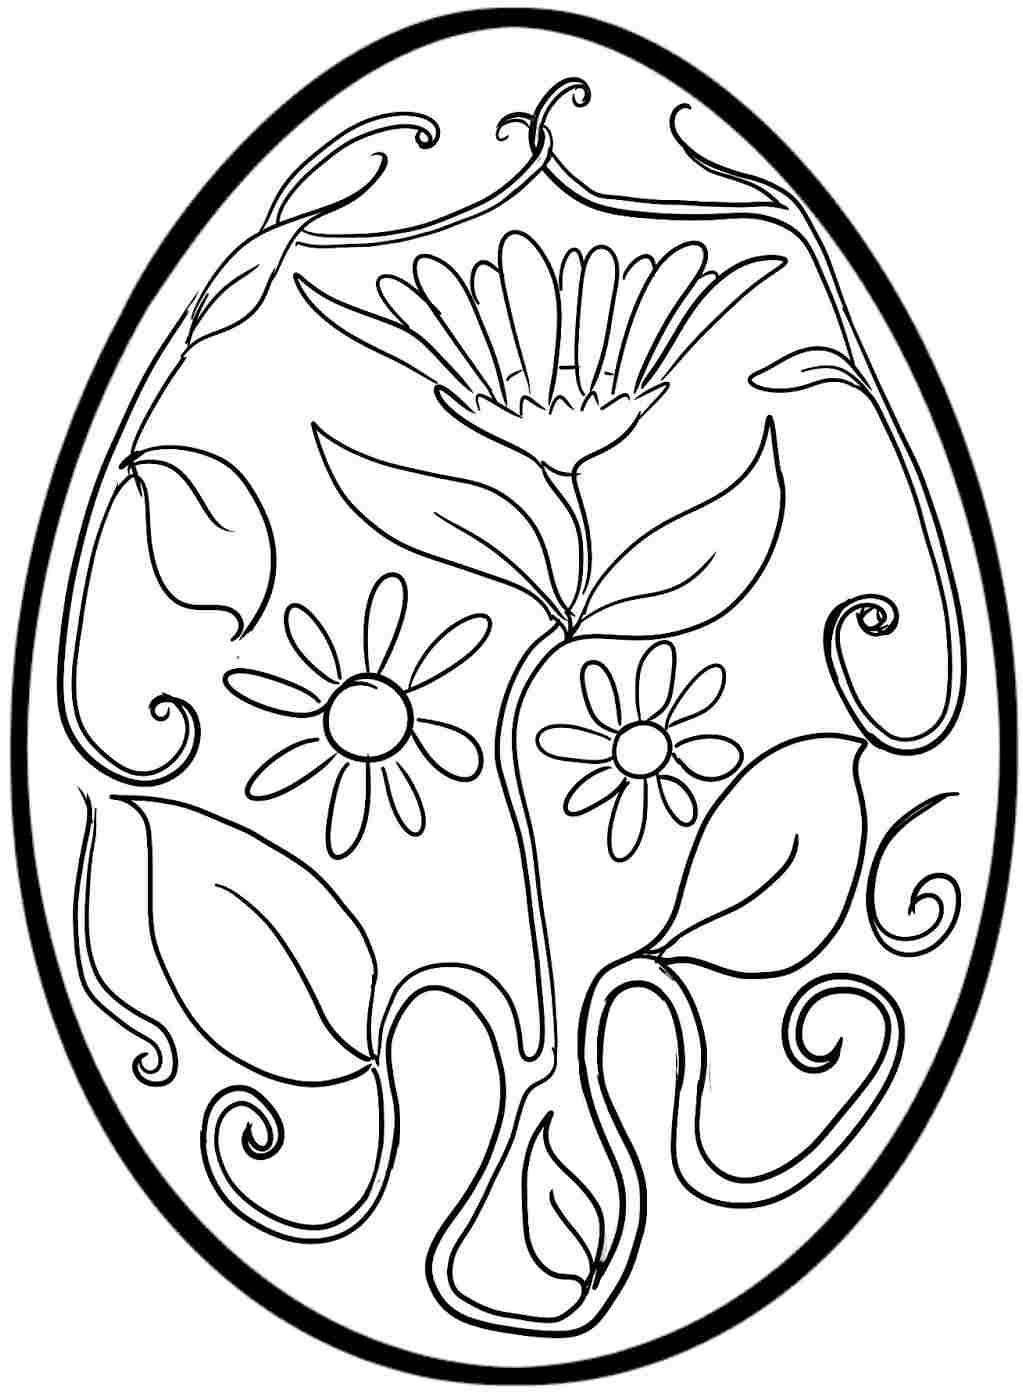 easter egg coloring pictures 217 free printable easter egg coloring pages coloring pictures easter egg